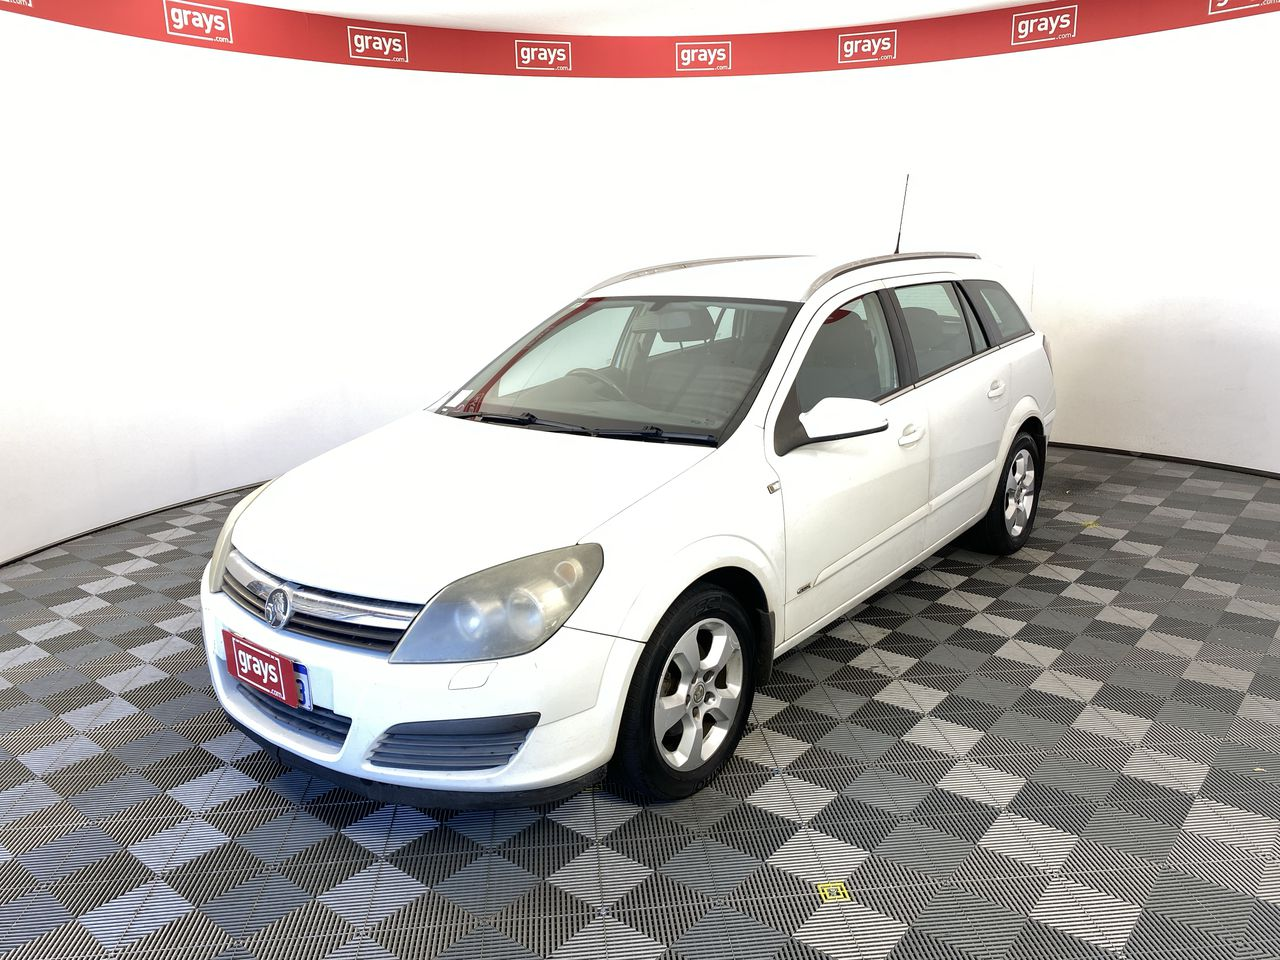 2006 Holden Astra CDX AH Automatic Wagon